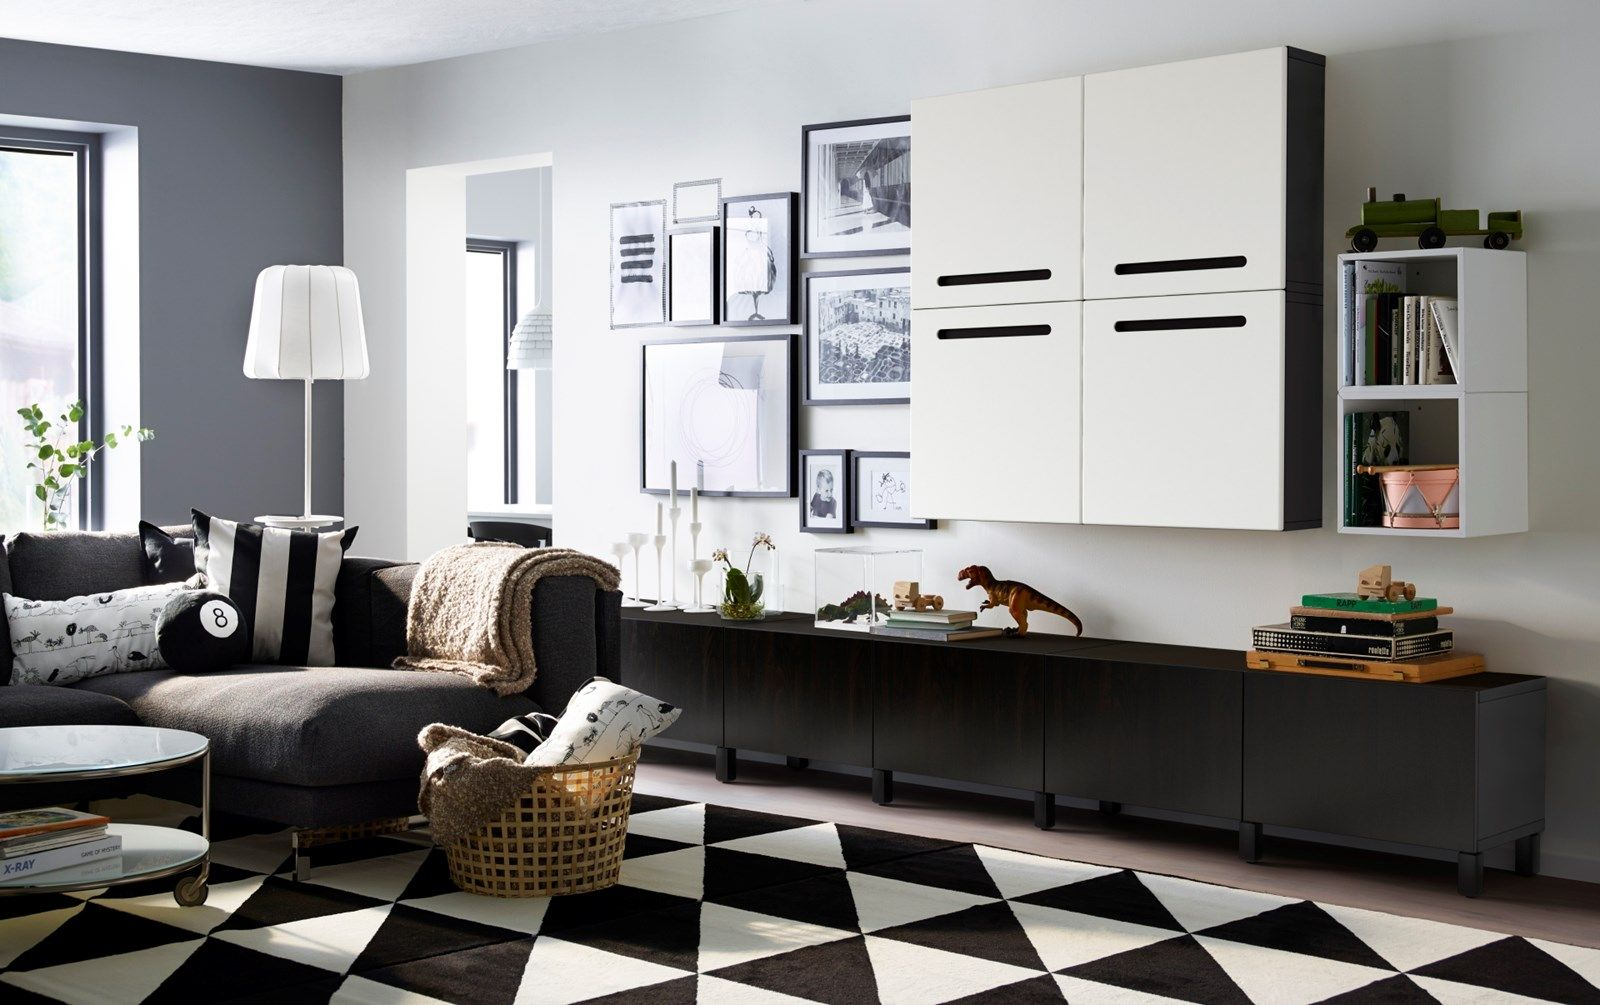 Best Of Dining Room Cabinets Ikea